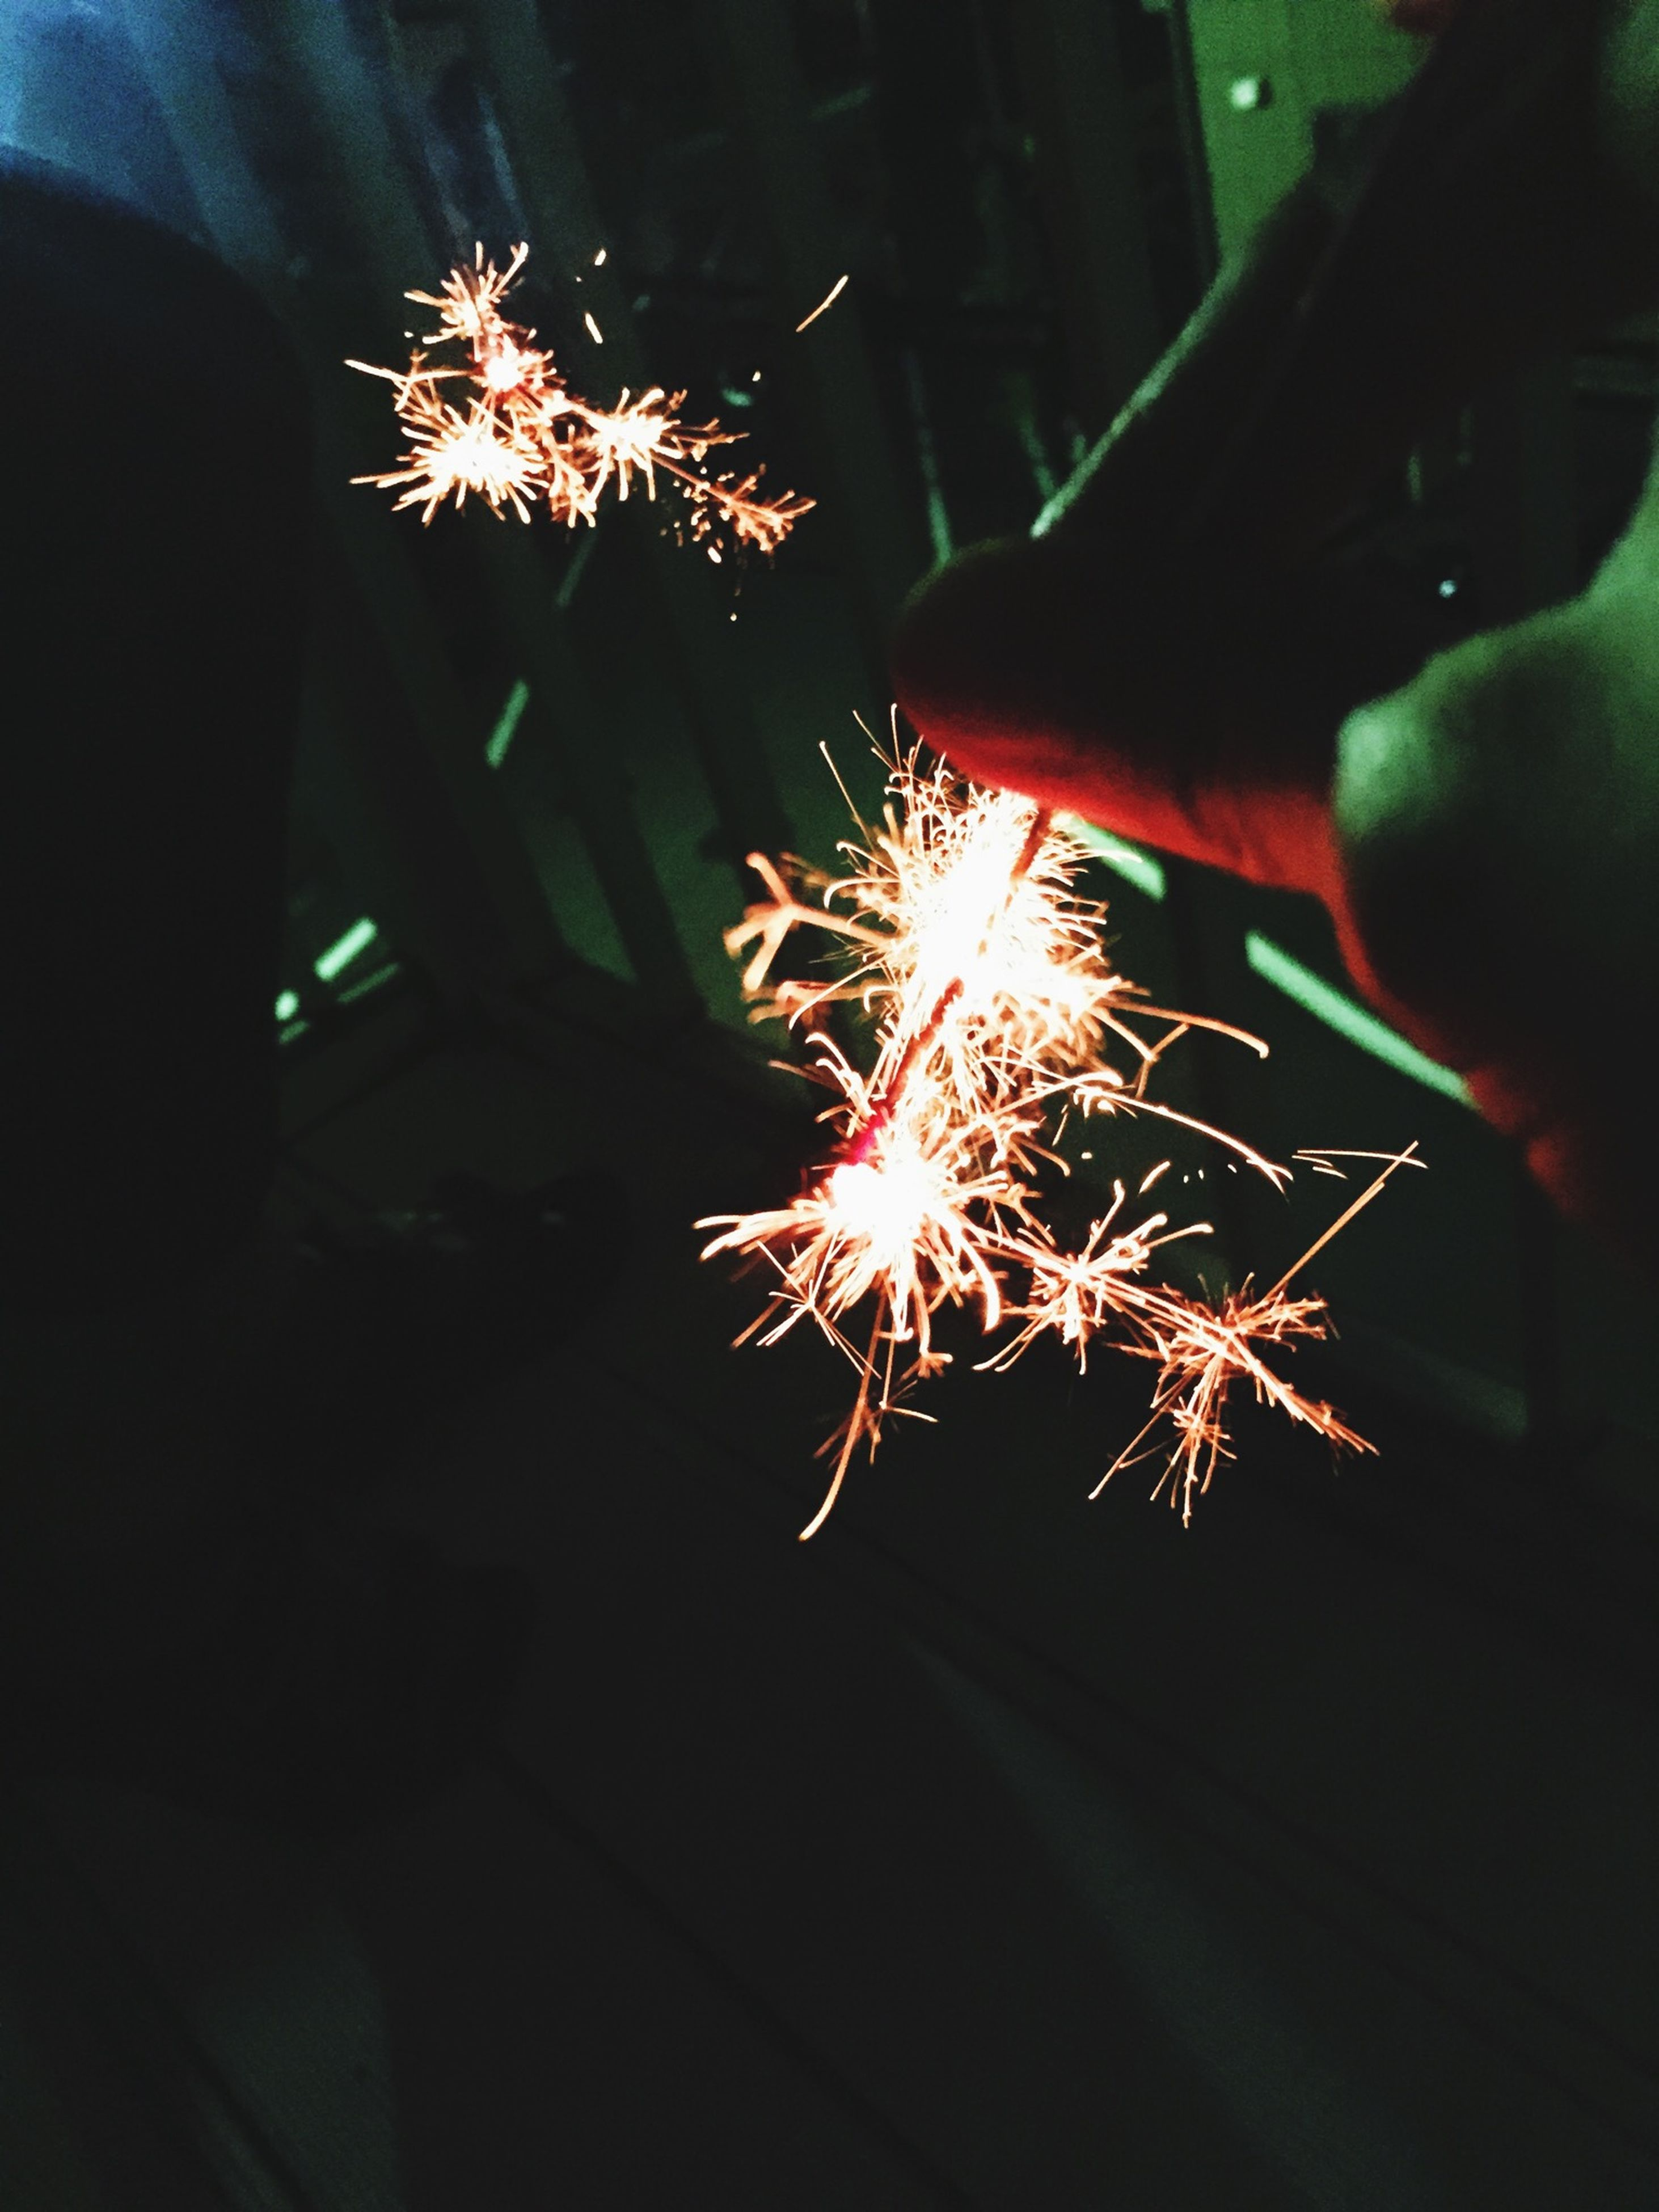 night, firework display, celebration, exploding, illuminated, firework - man made object, sparks, glowing, long exposure, fire - natural phenomenon, motion, event, low angle view, arts culture and entertainment, firework, blurred motion, burning, entertainment, celebration event, sky